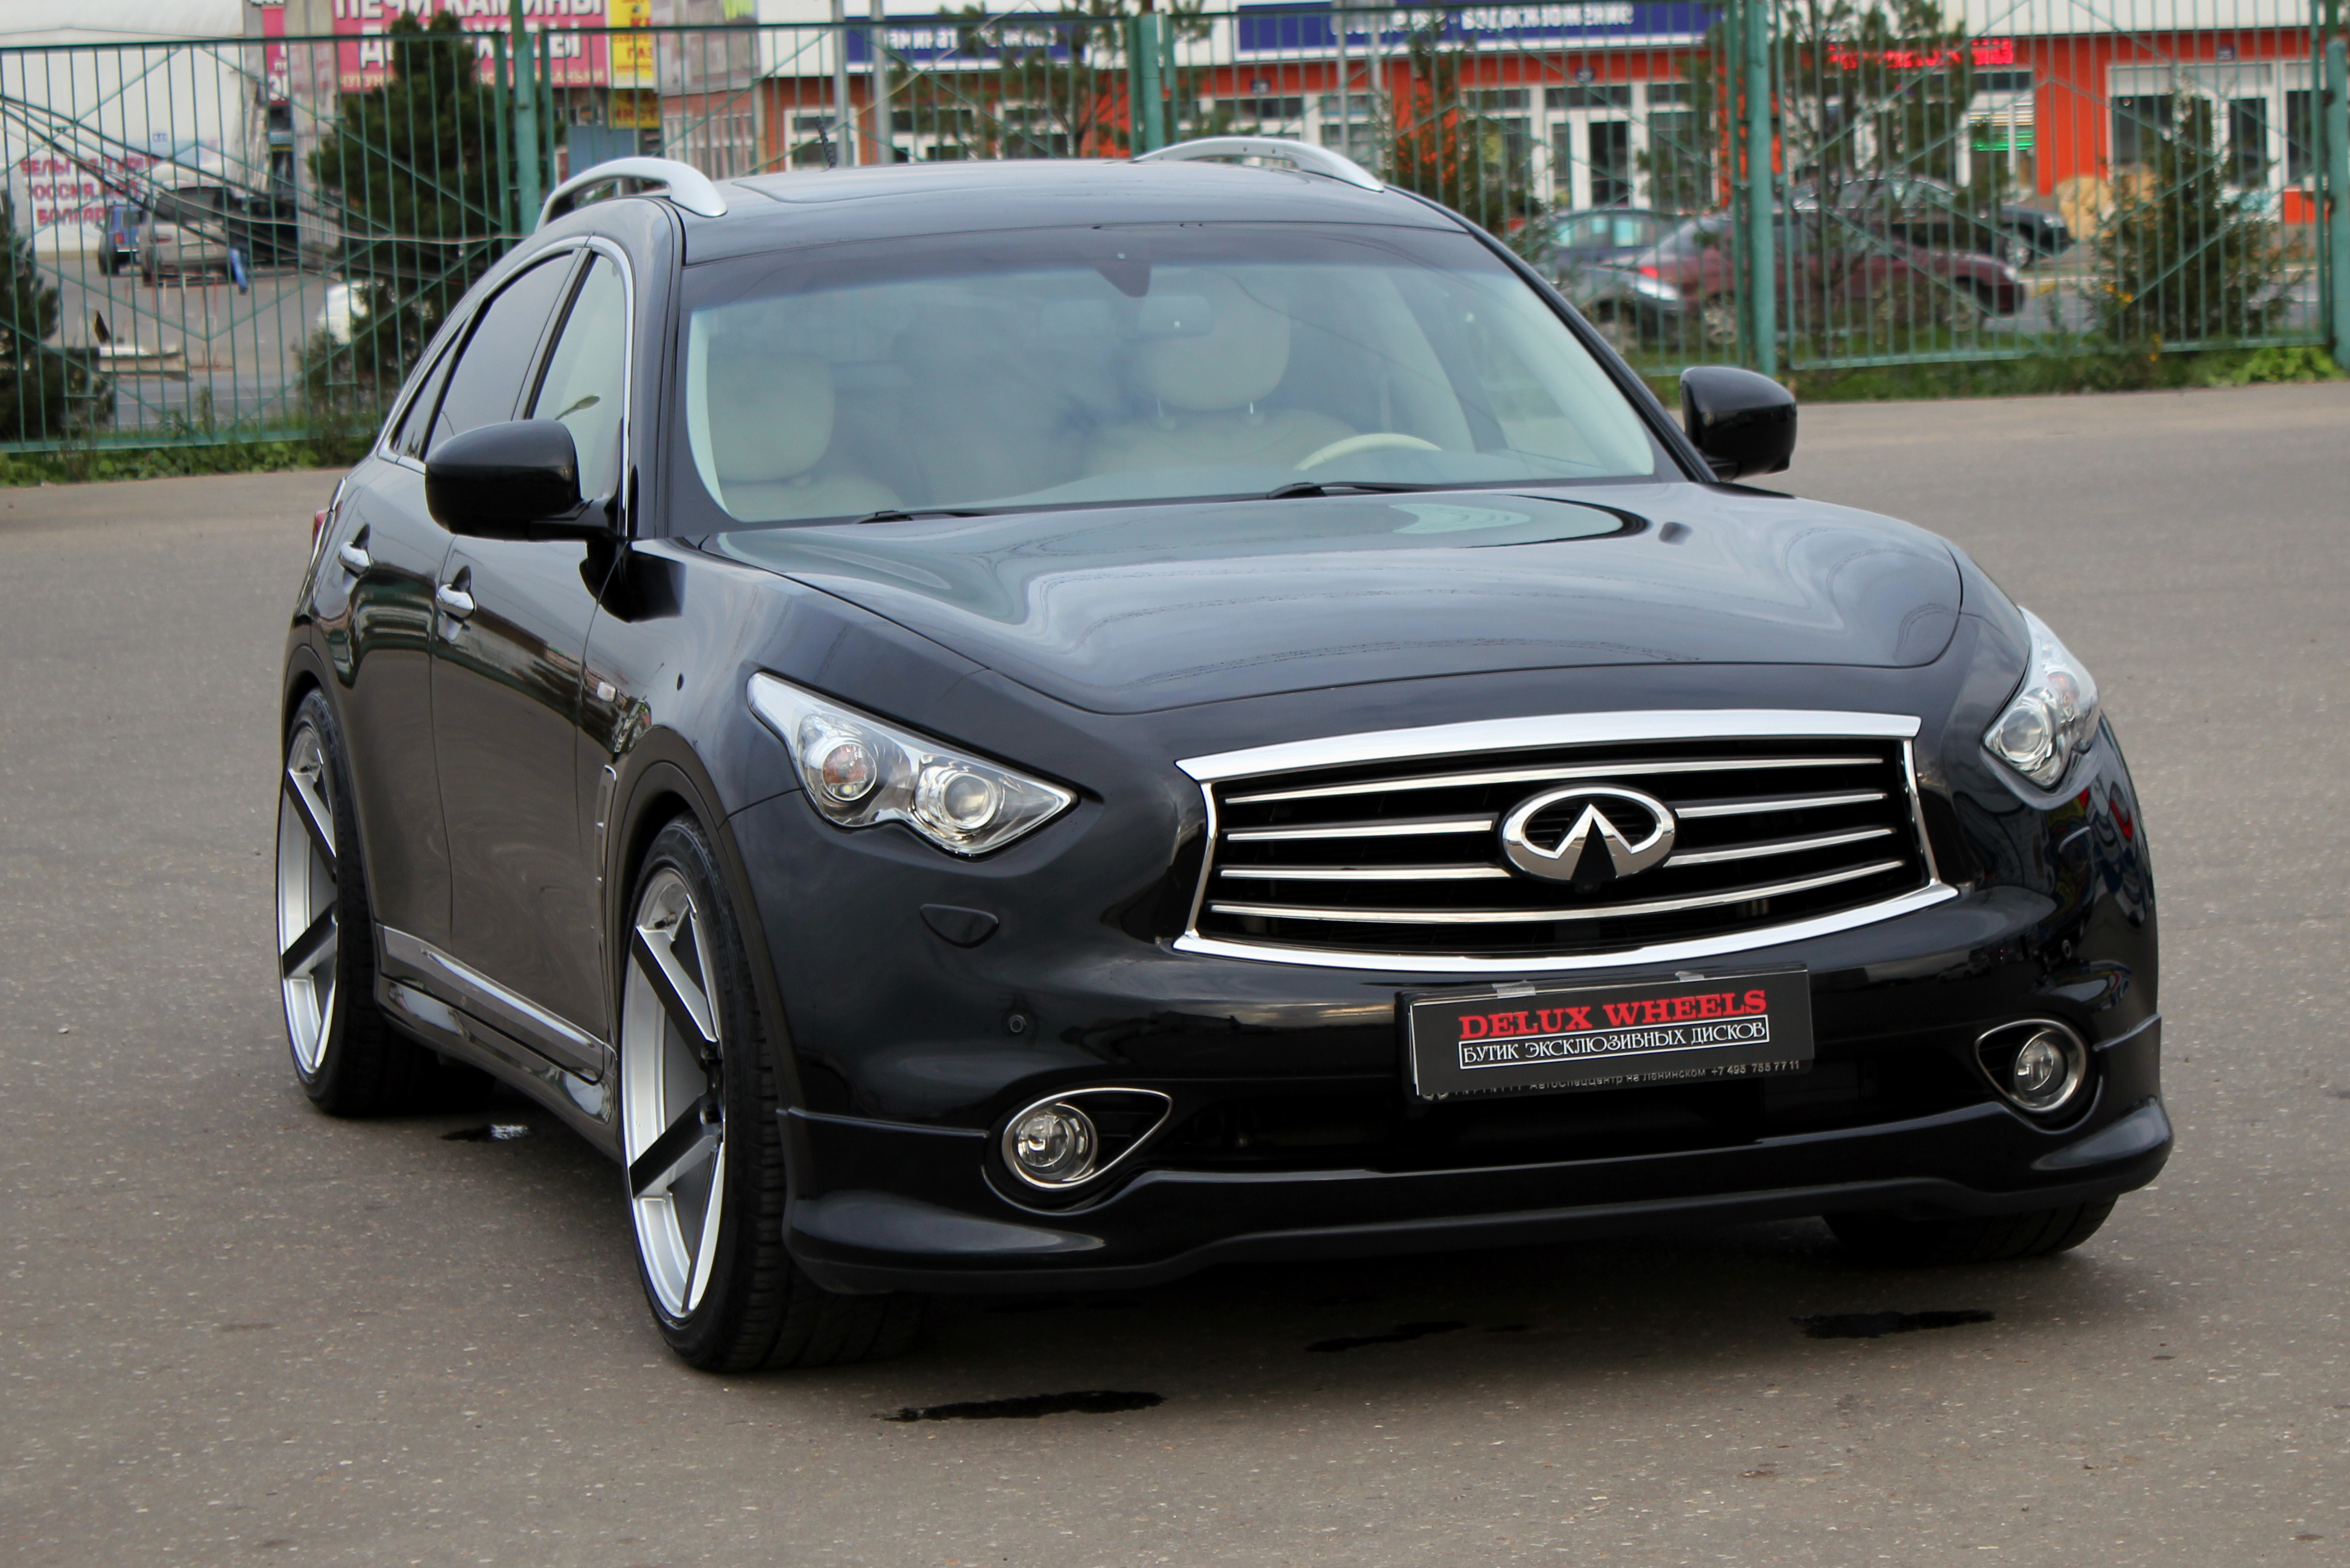 Koko Kuture Sardinia-5 Silver Black on Infiniti FX37